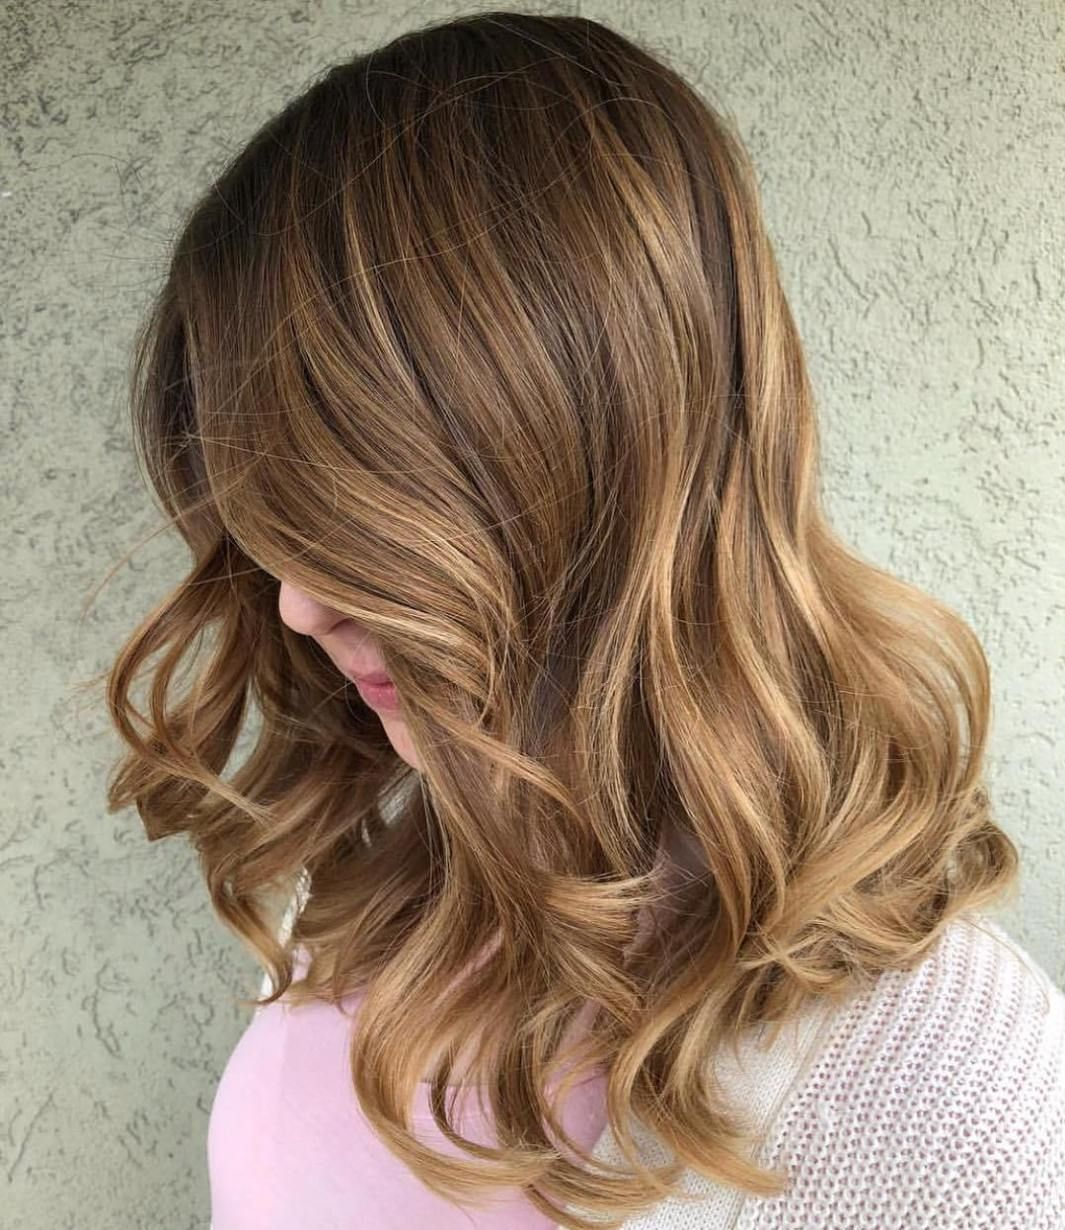 20 Best Hair Colors To Look Younger Instantly Hair Color For Fair Skin Cool Hair Color Youthful Hair